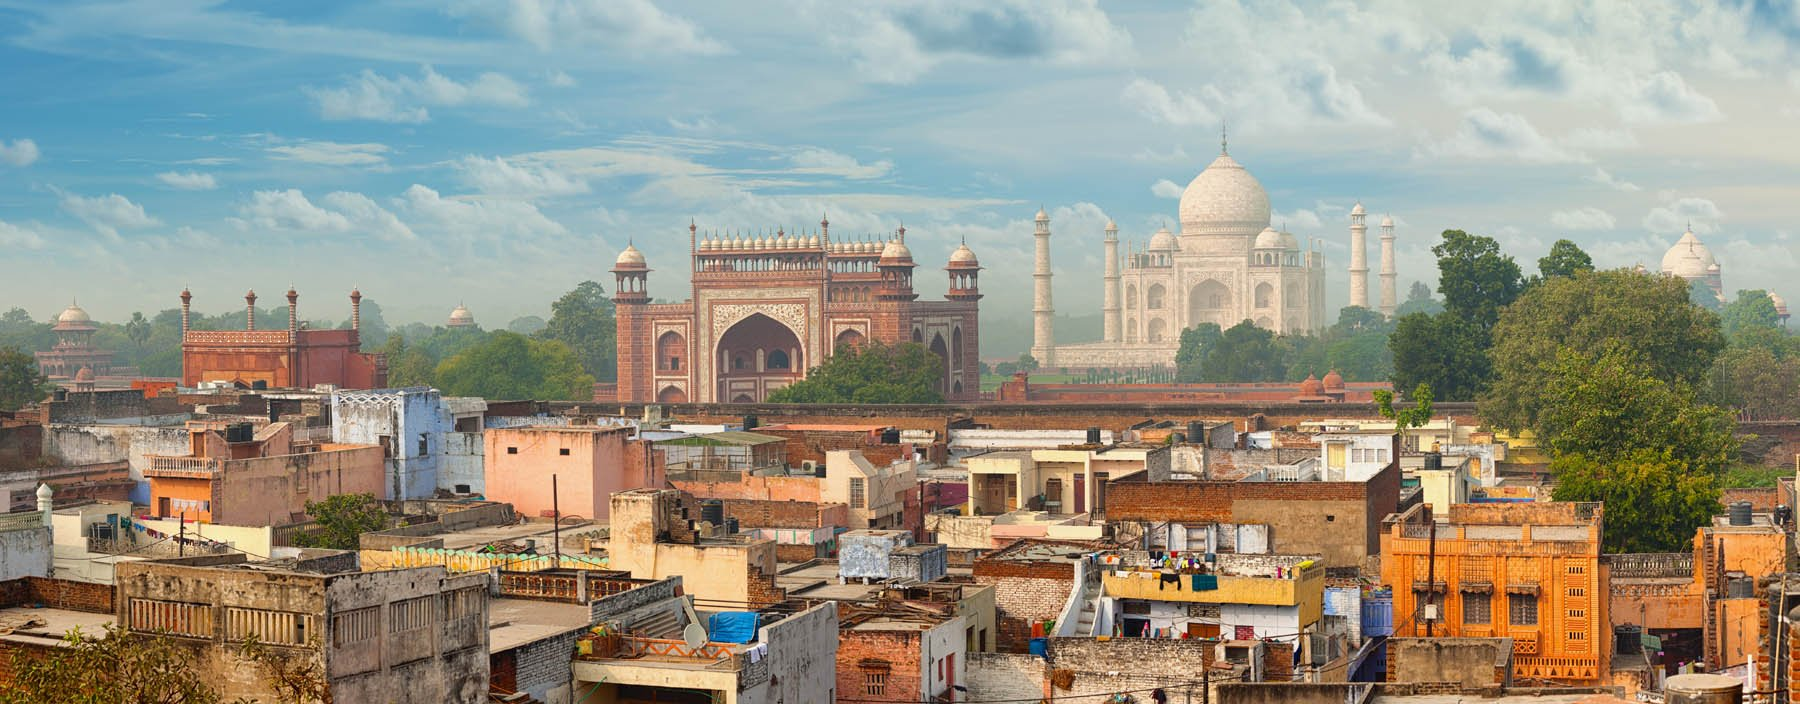 in, agra, panorama of agra city.jpg